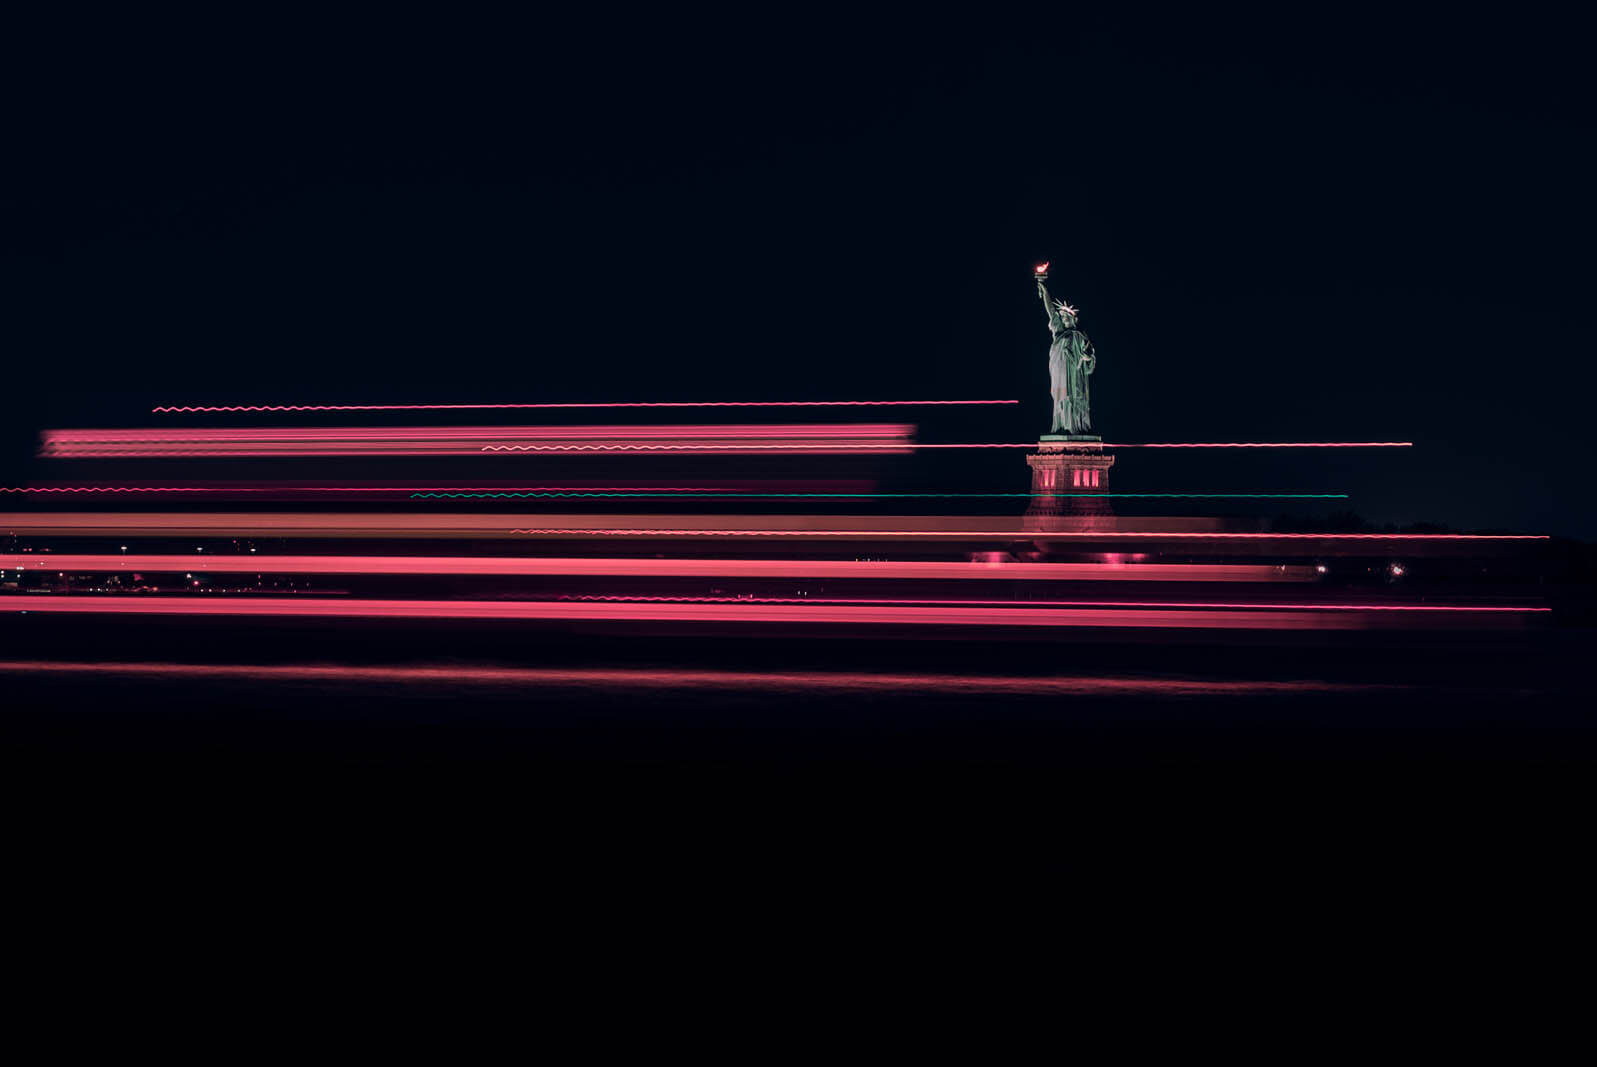 pink neon streaks from the boats passing the statue of liberty